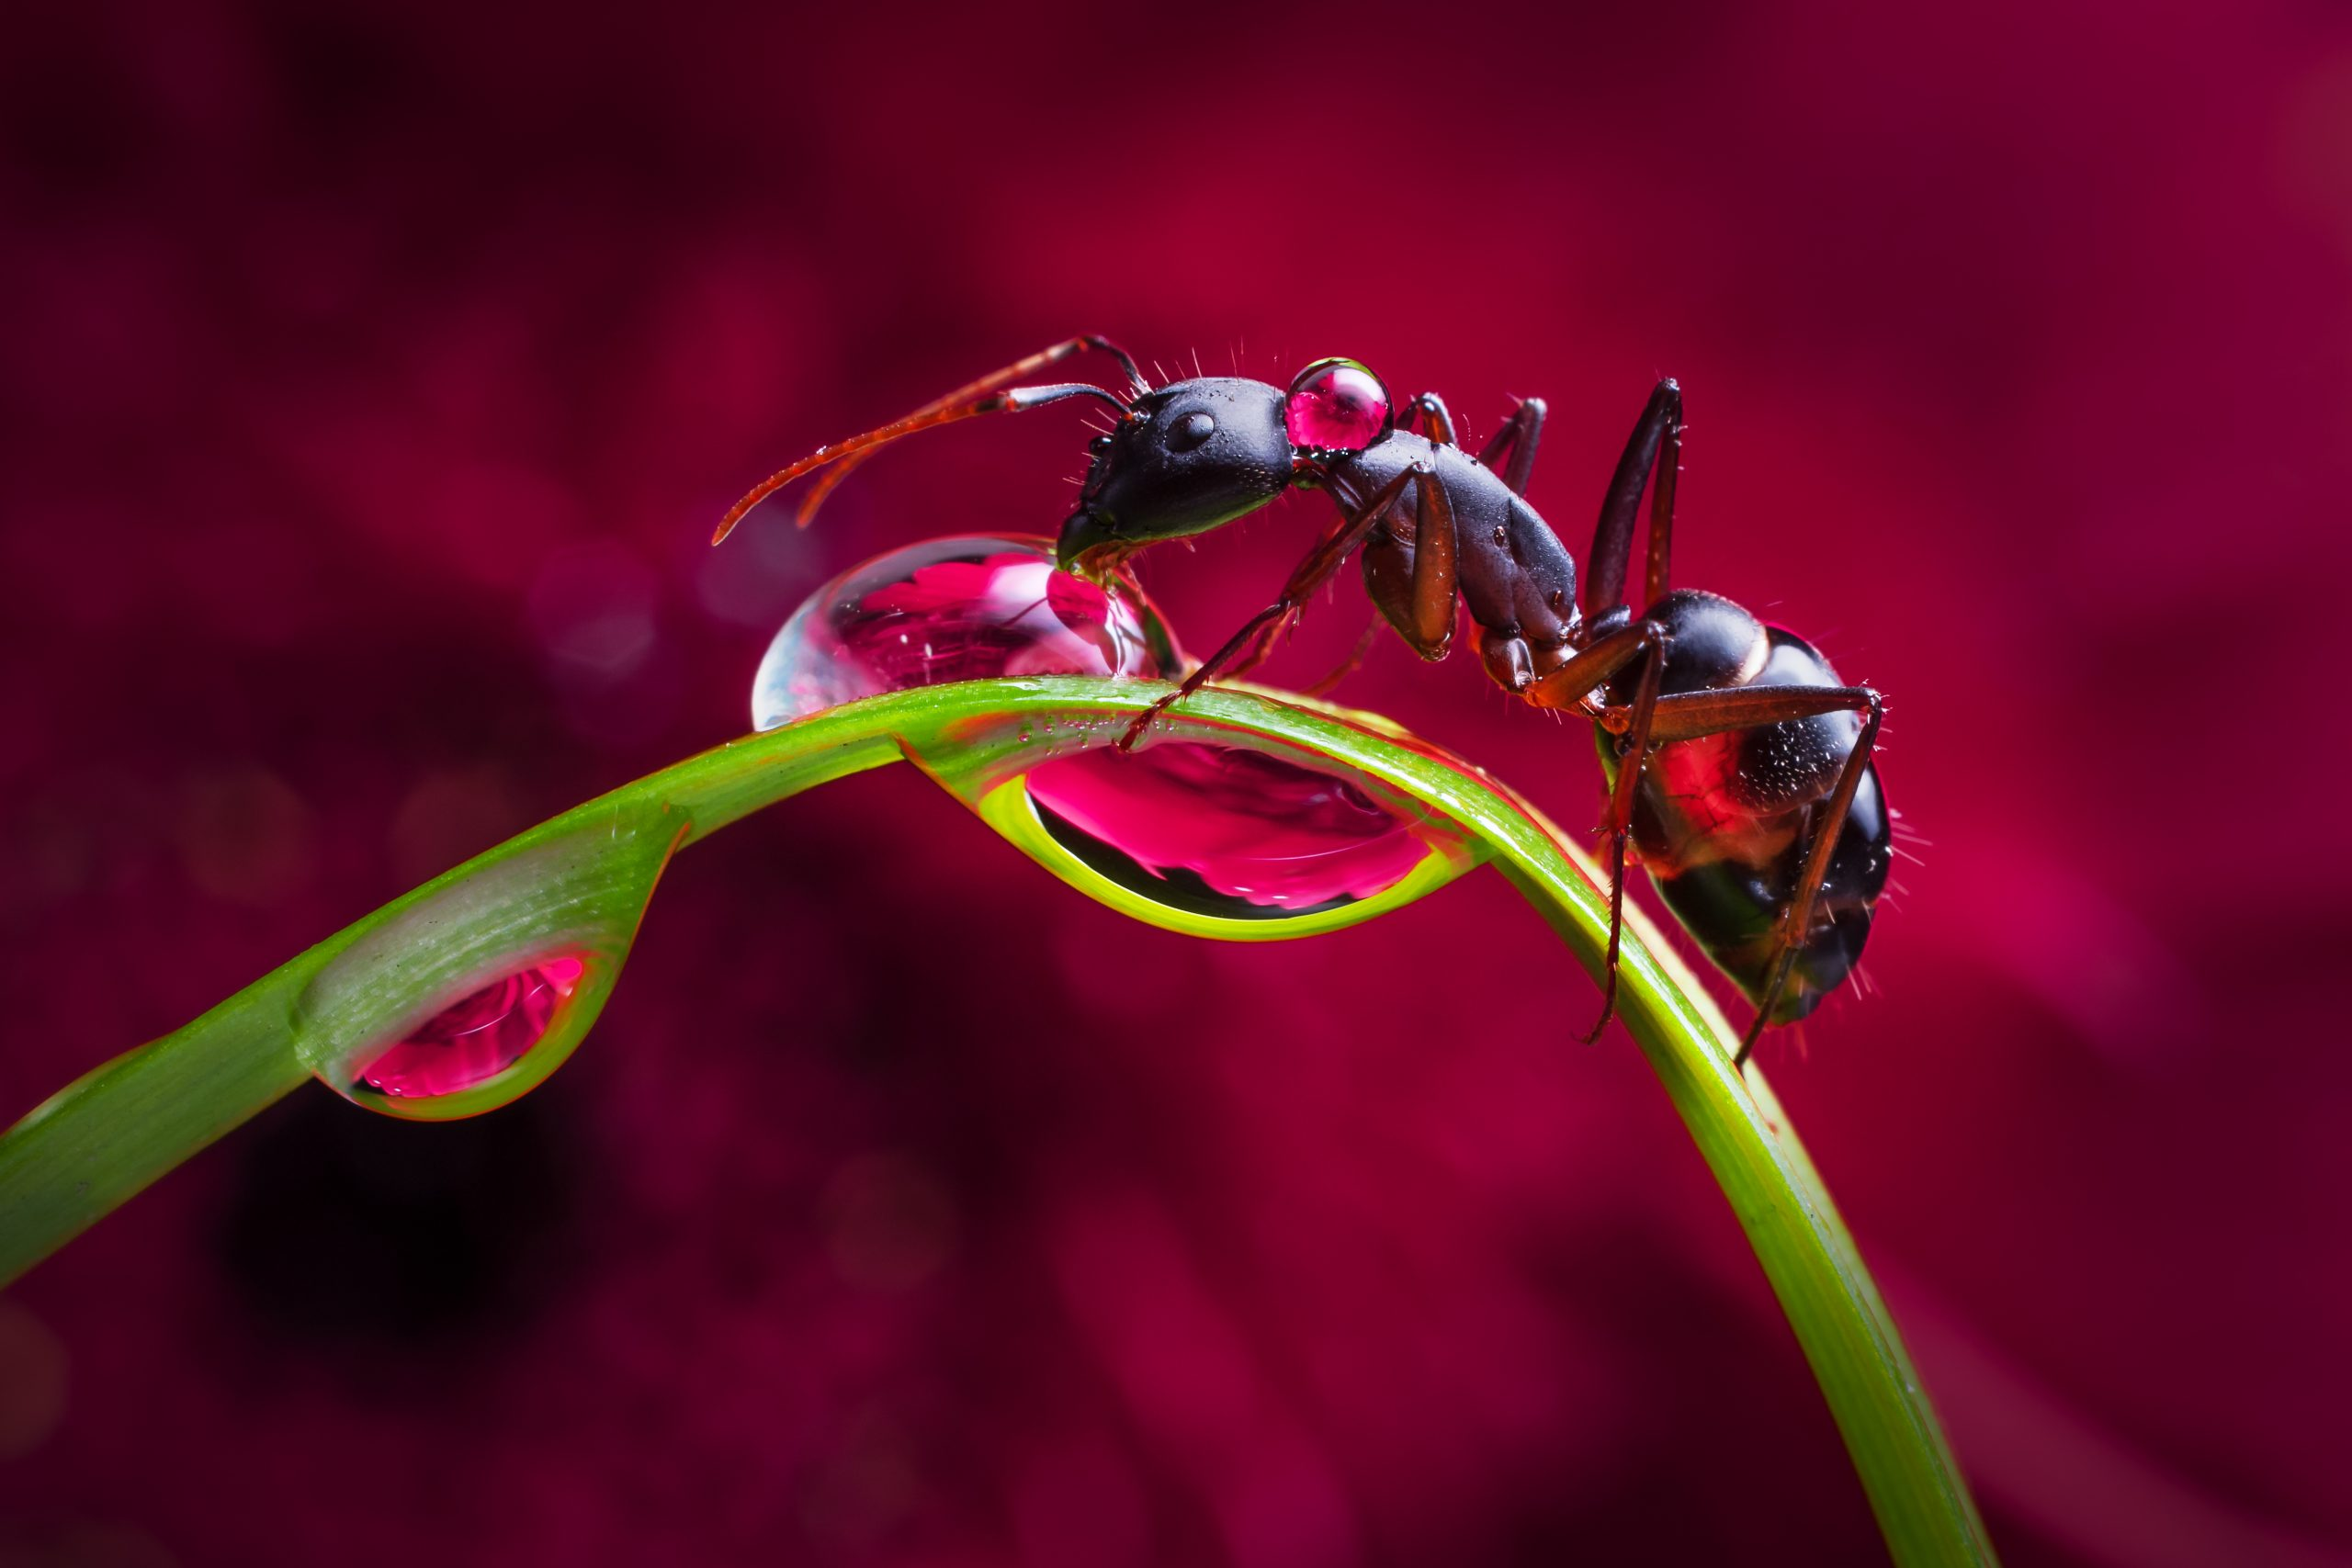 ant on a plant stem